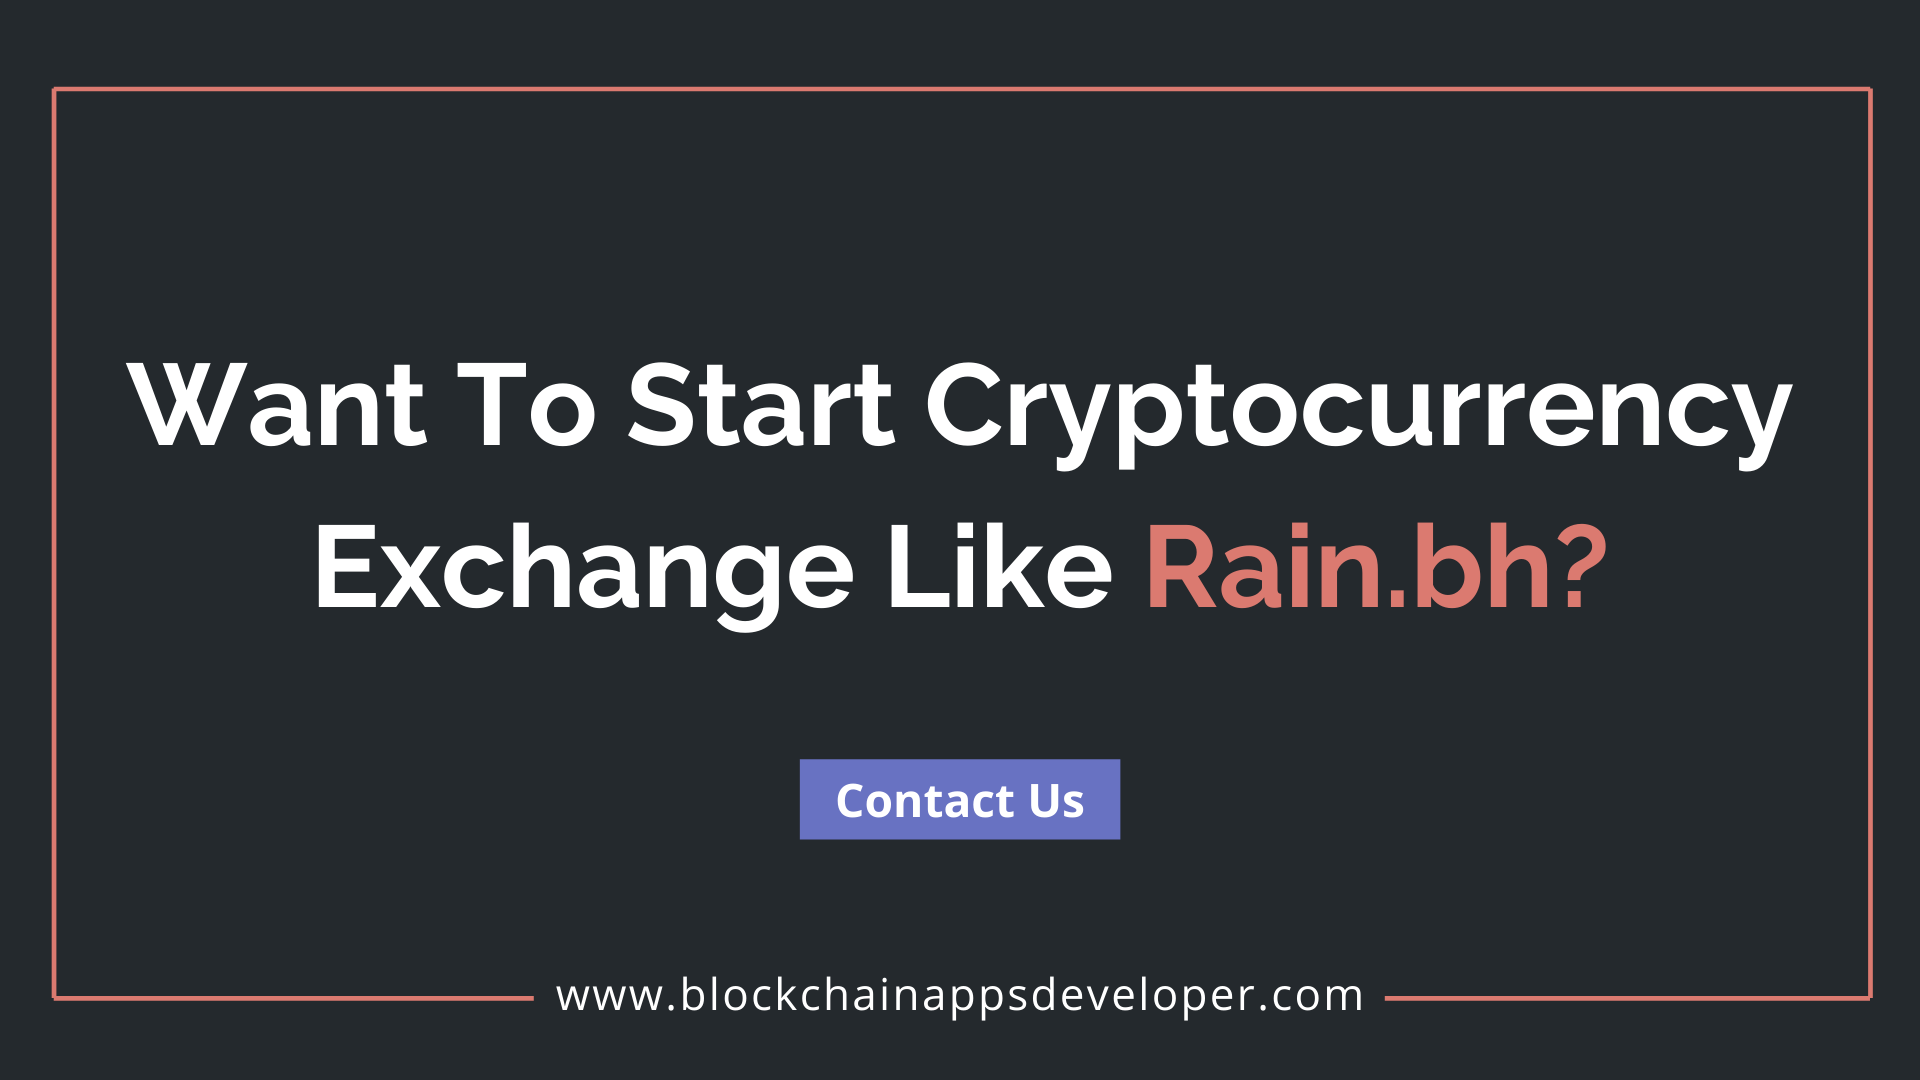 How To Start A Cryptocurrency Exchange Website Like Rain.bh?